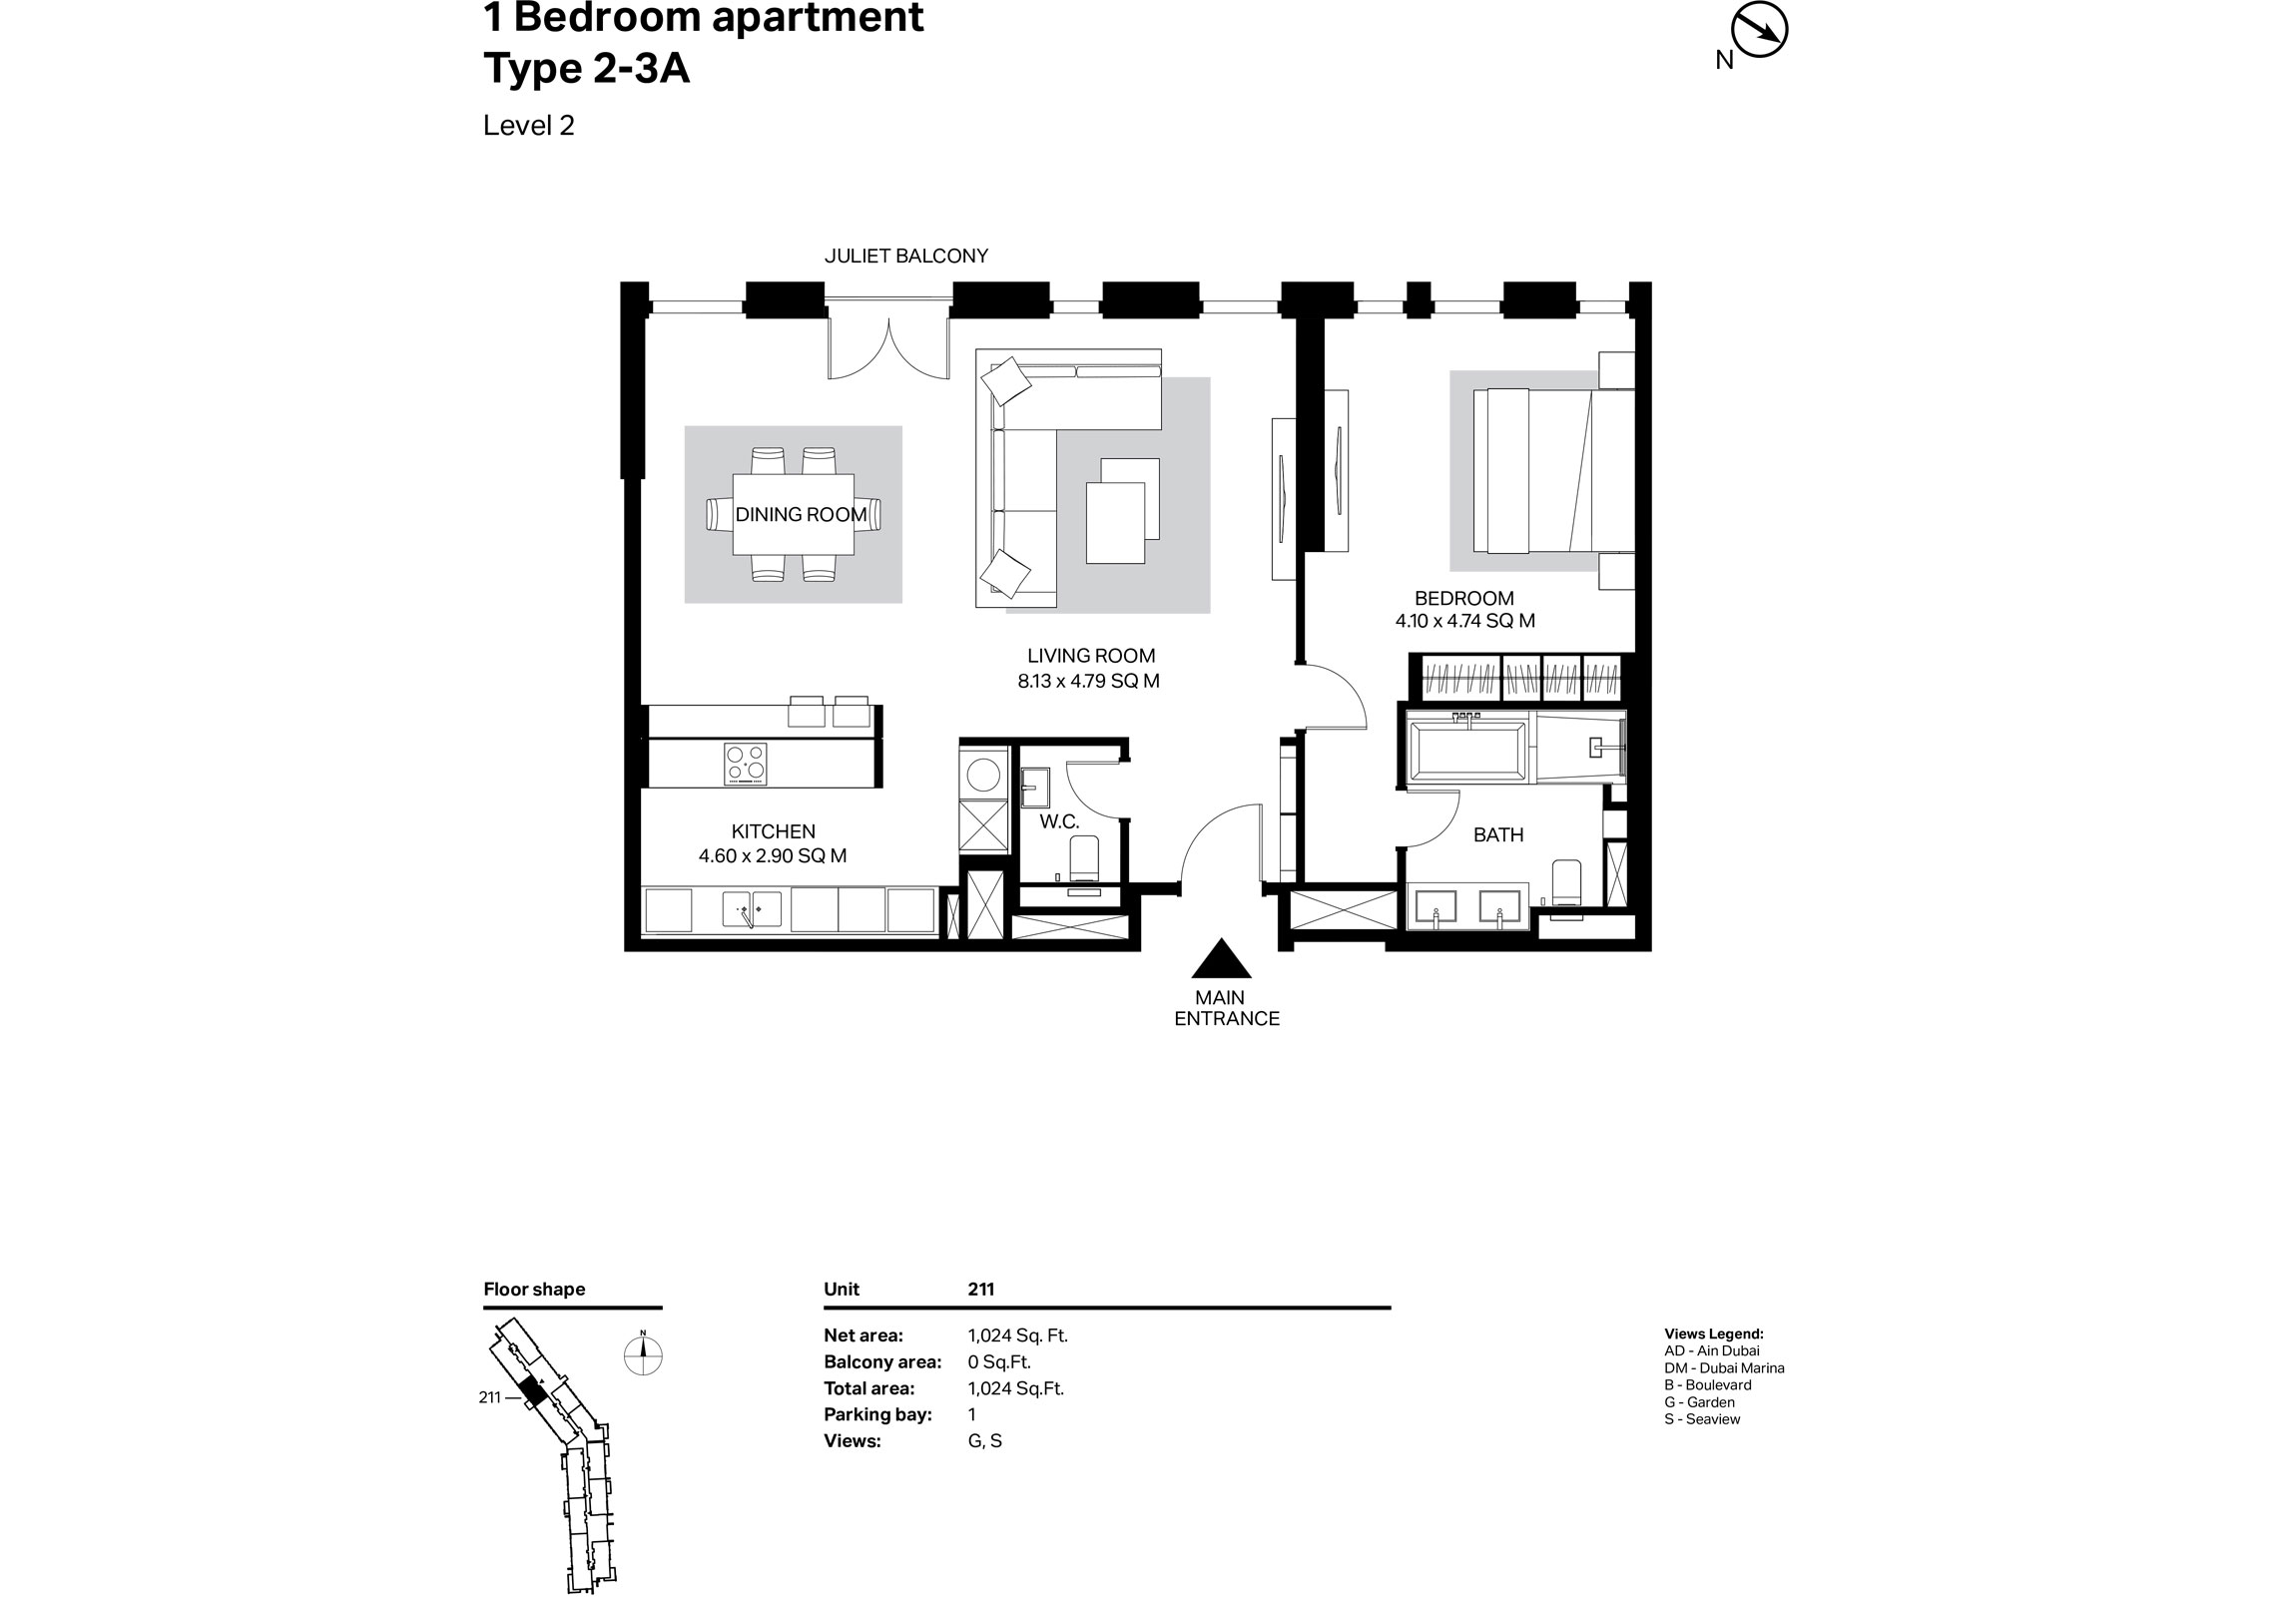 Building 2 - 1 Bedroom Type 2-3A Size 1024 sq ft